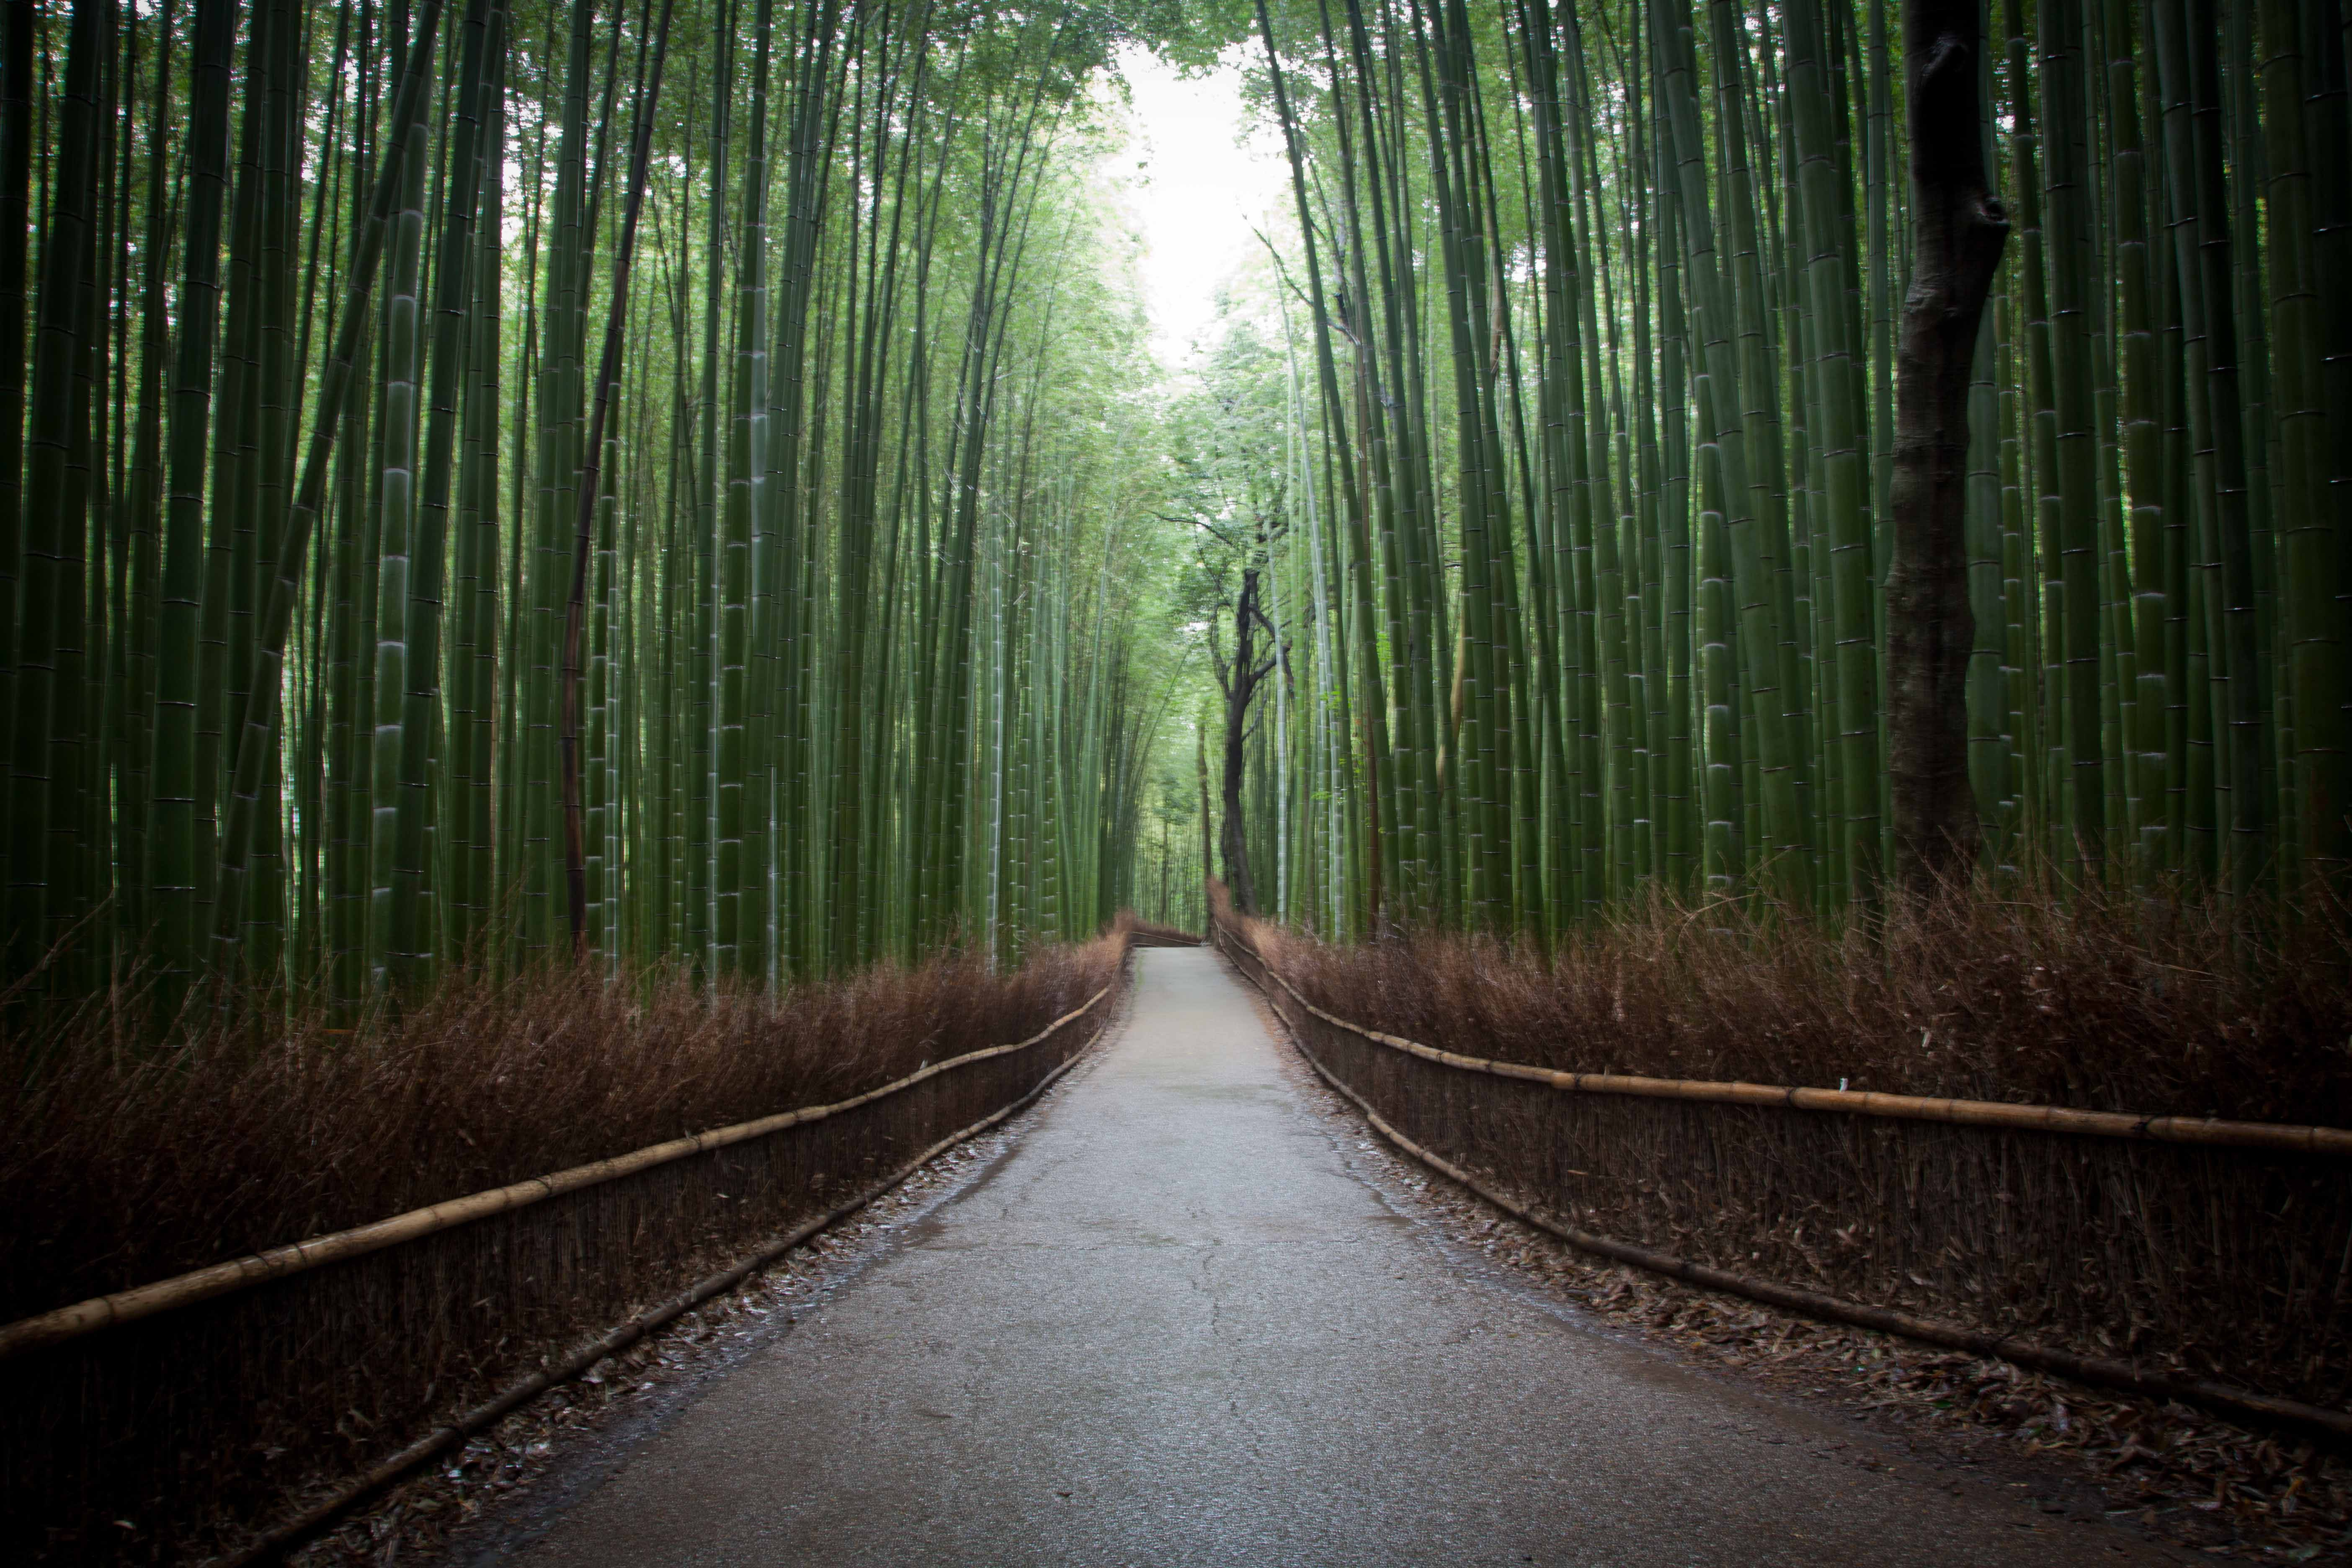 Bamboo groves of Arashiyama in Kyoto